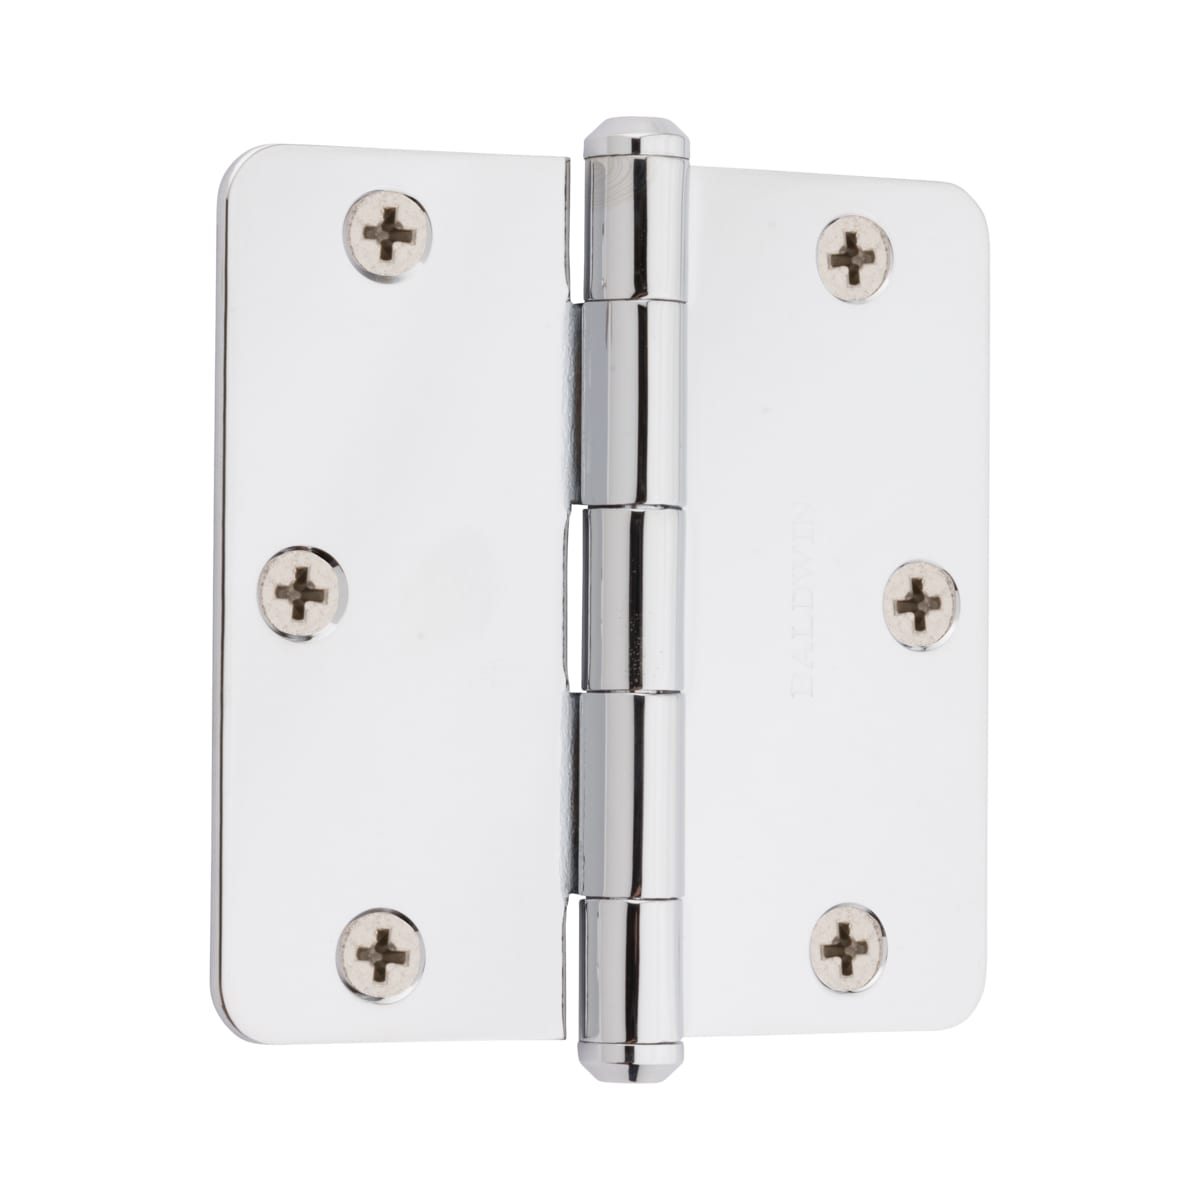 "Baldwin 3.5"" x 3.5"" Solid Brass 1/4"" Radius Corner Plain Bearing Mortise Hinge - Single Hinge"